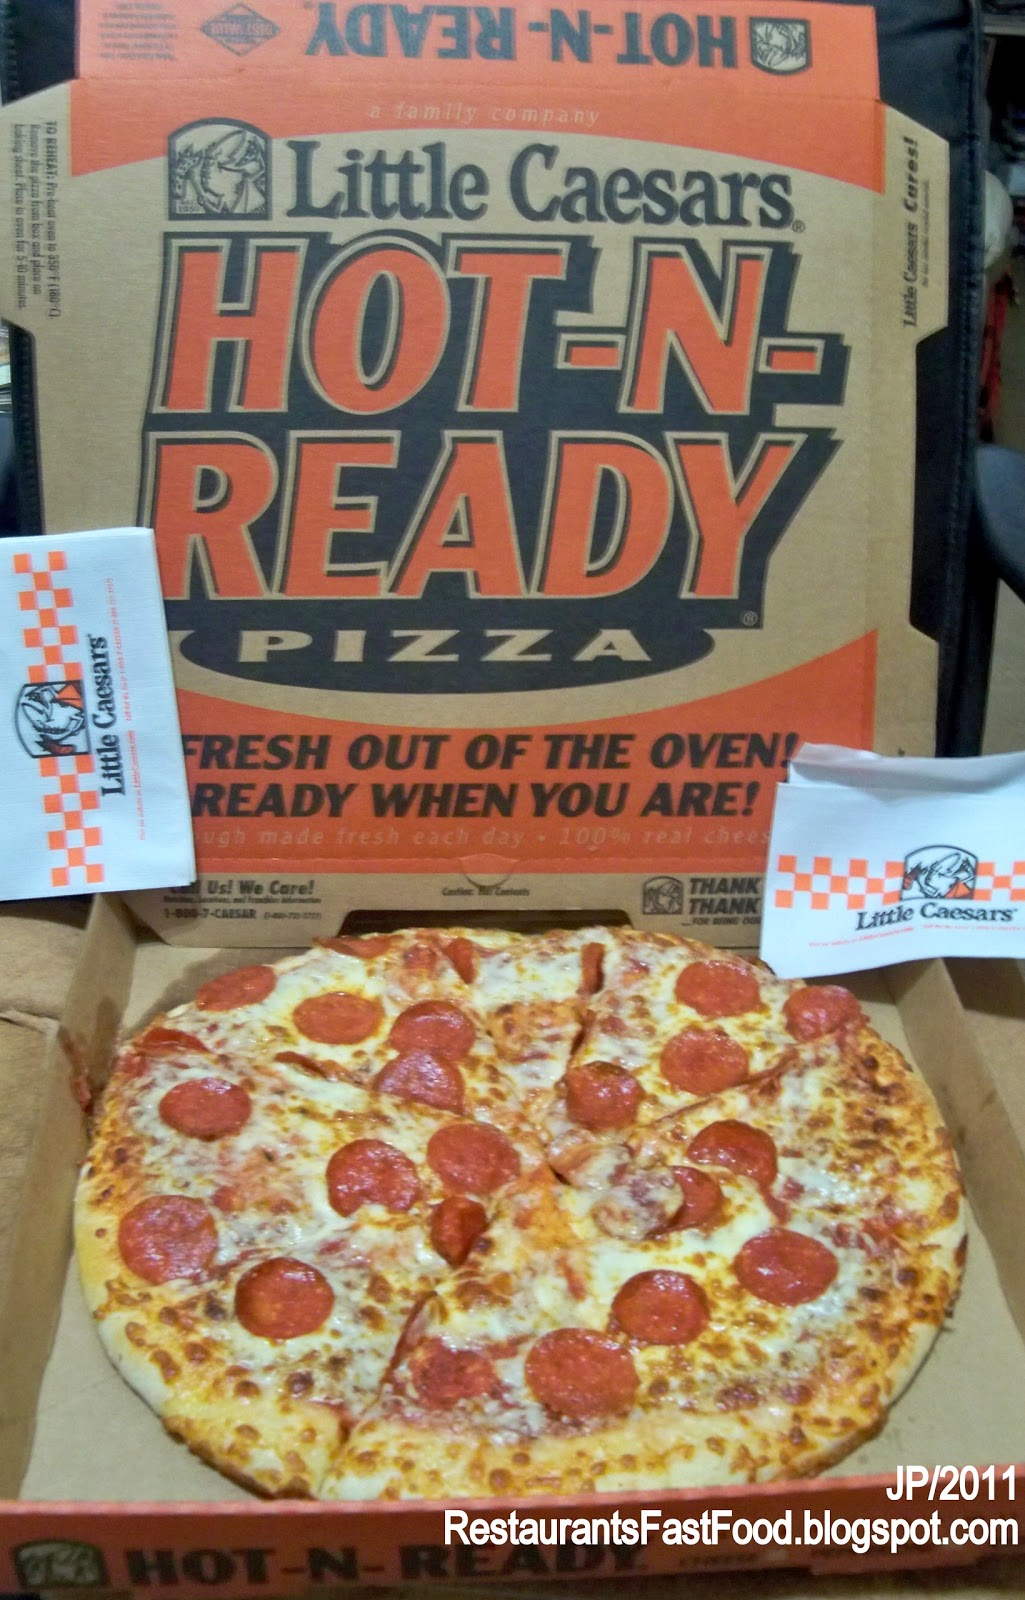 restaurant fast food menu mcdonald s dq bk hamburger pizza mexican little caesars pizza key west florida take out pizza shop station kmart 2928 n roosevelt blvd key west fl 33040 little caesars pizza kmart